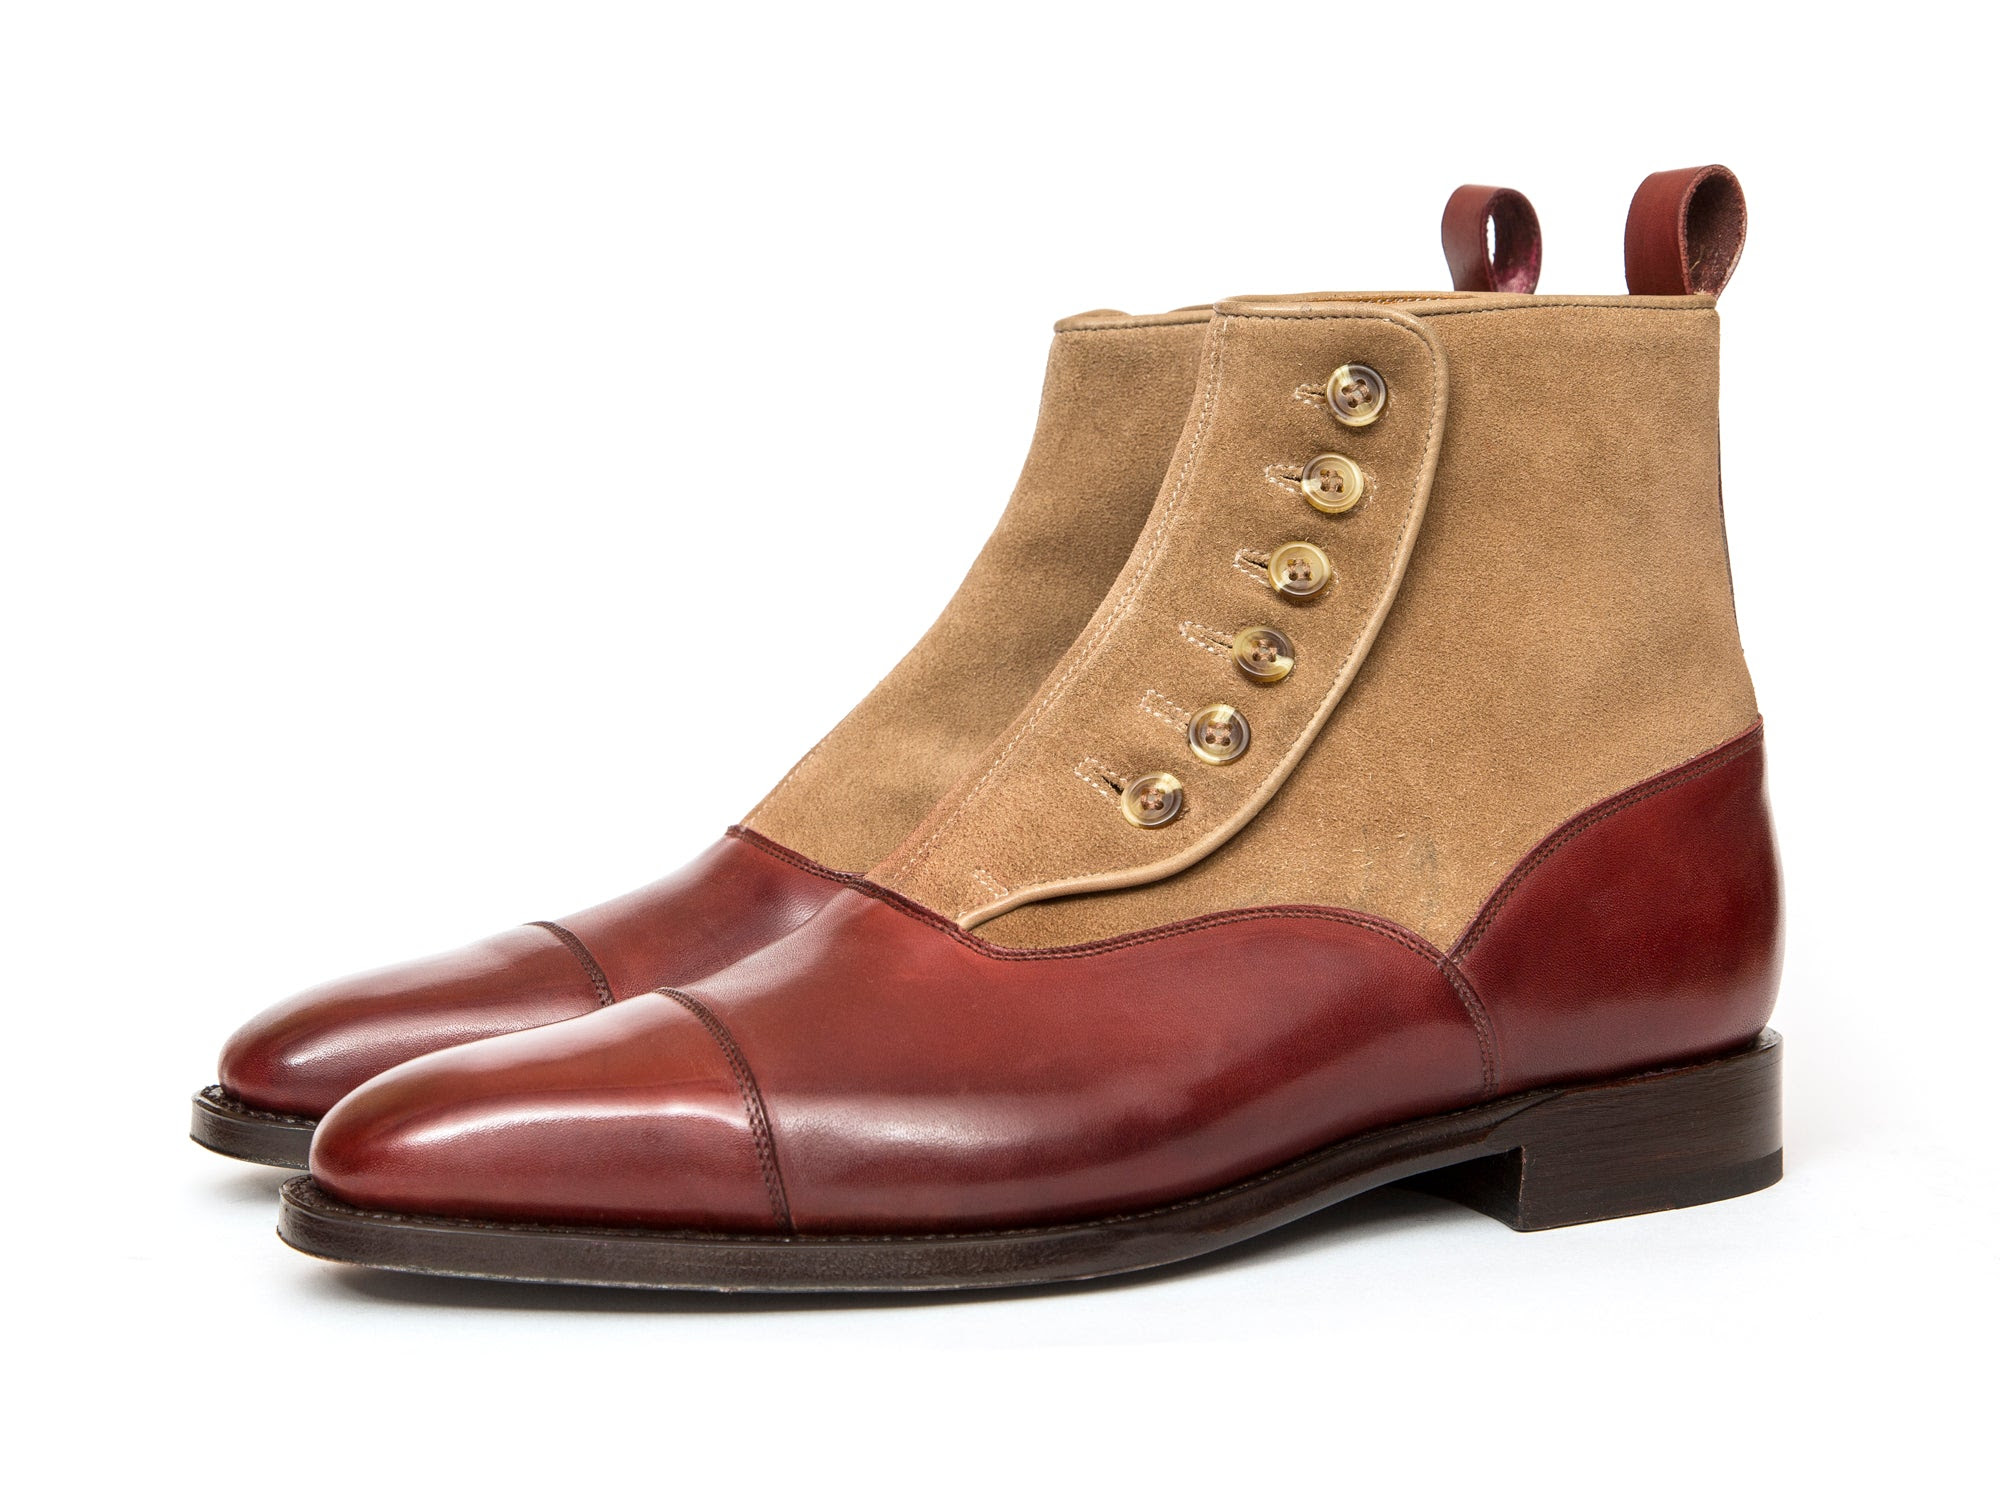 Image of Bellevue - Burgundy Calf / Oatmeal Suede GMTO